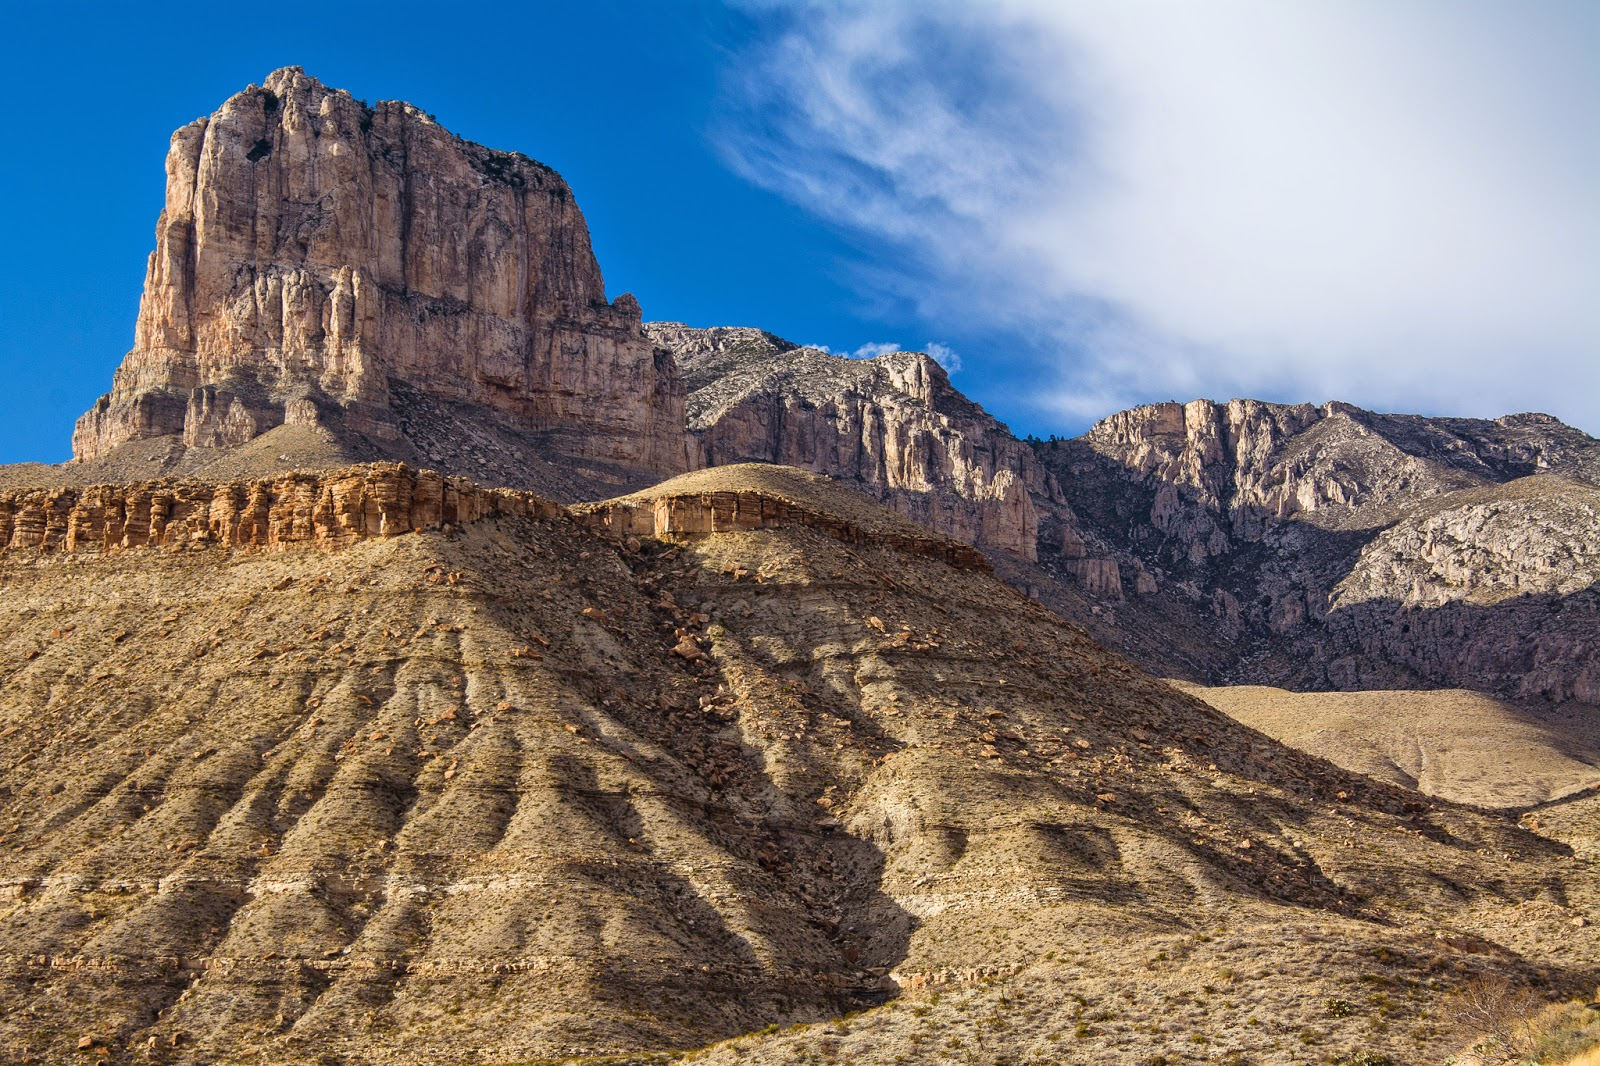 El Capitan, Guadalupe Mountains National Park